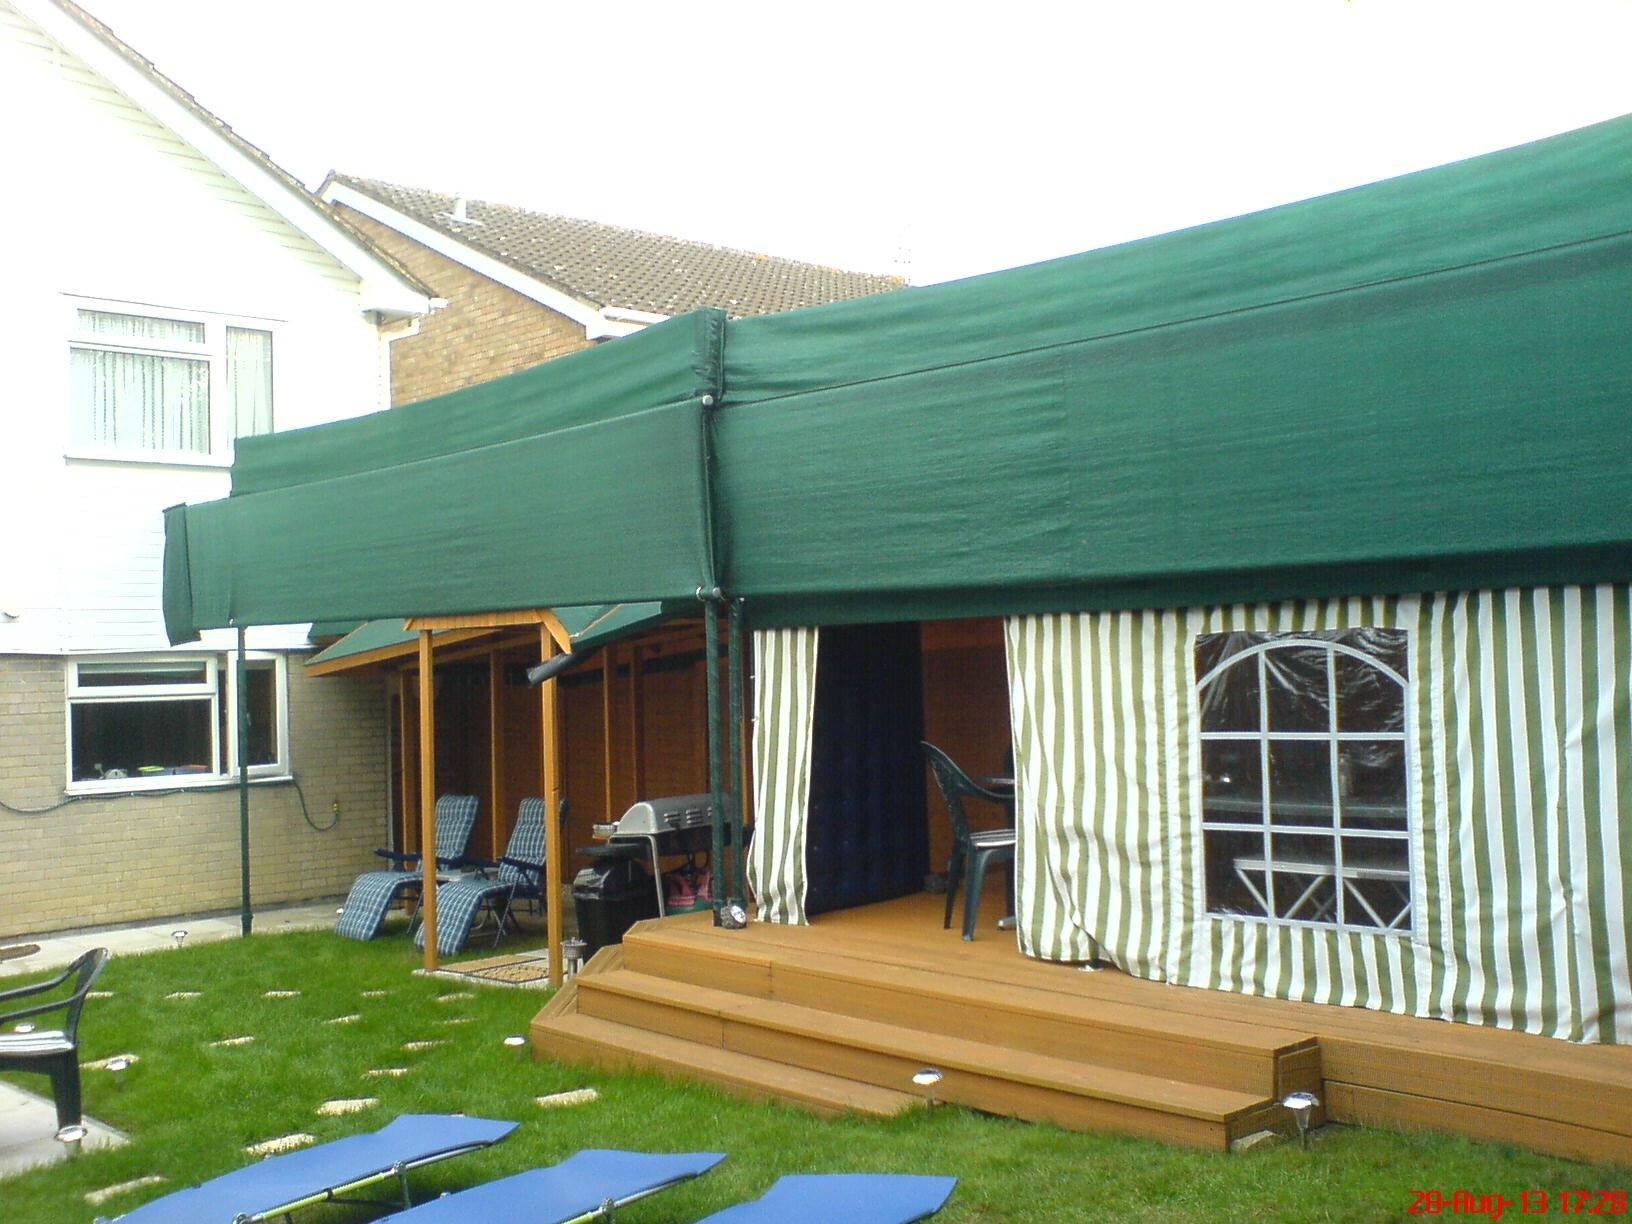 Sewing Shop's awning commission